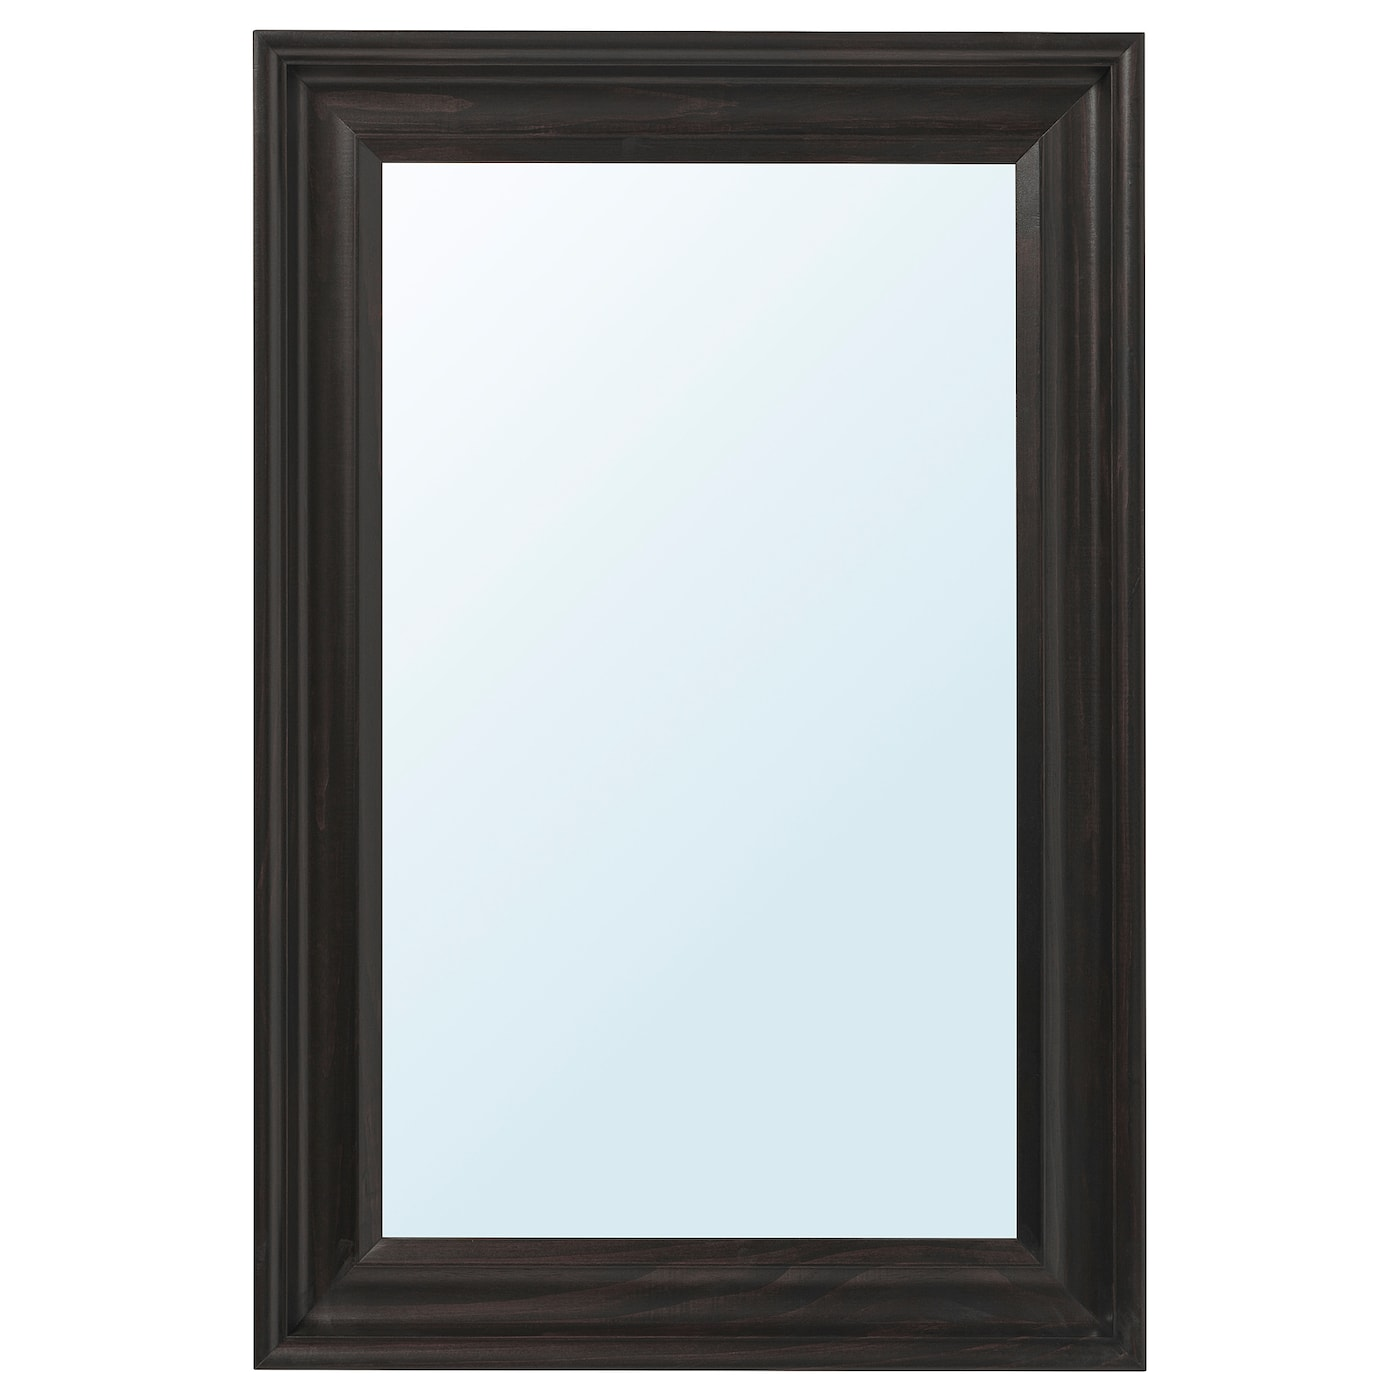 IKEA HEMNES mirror Provided with safety film - reduces damage if the glass is broken.